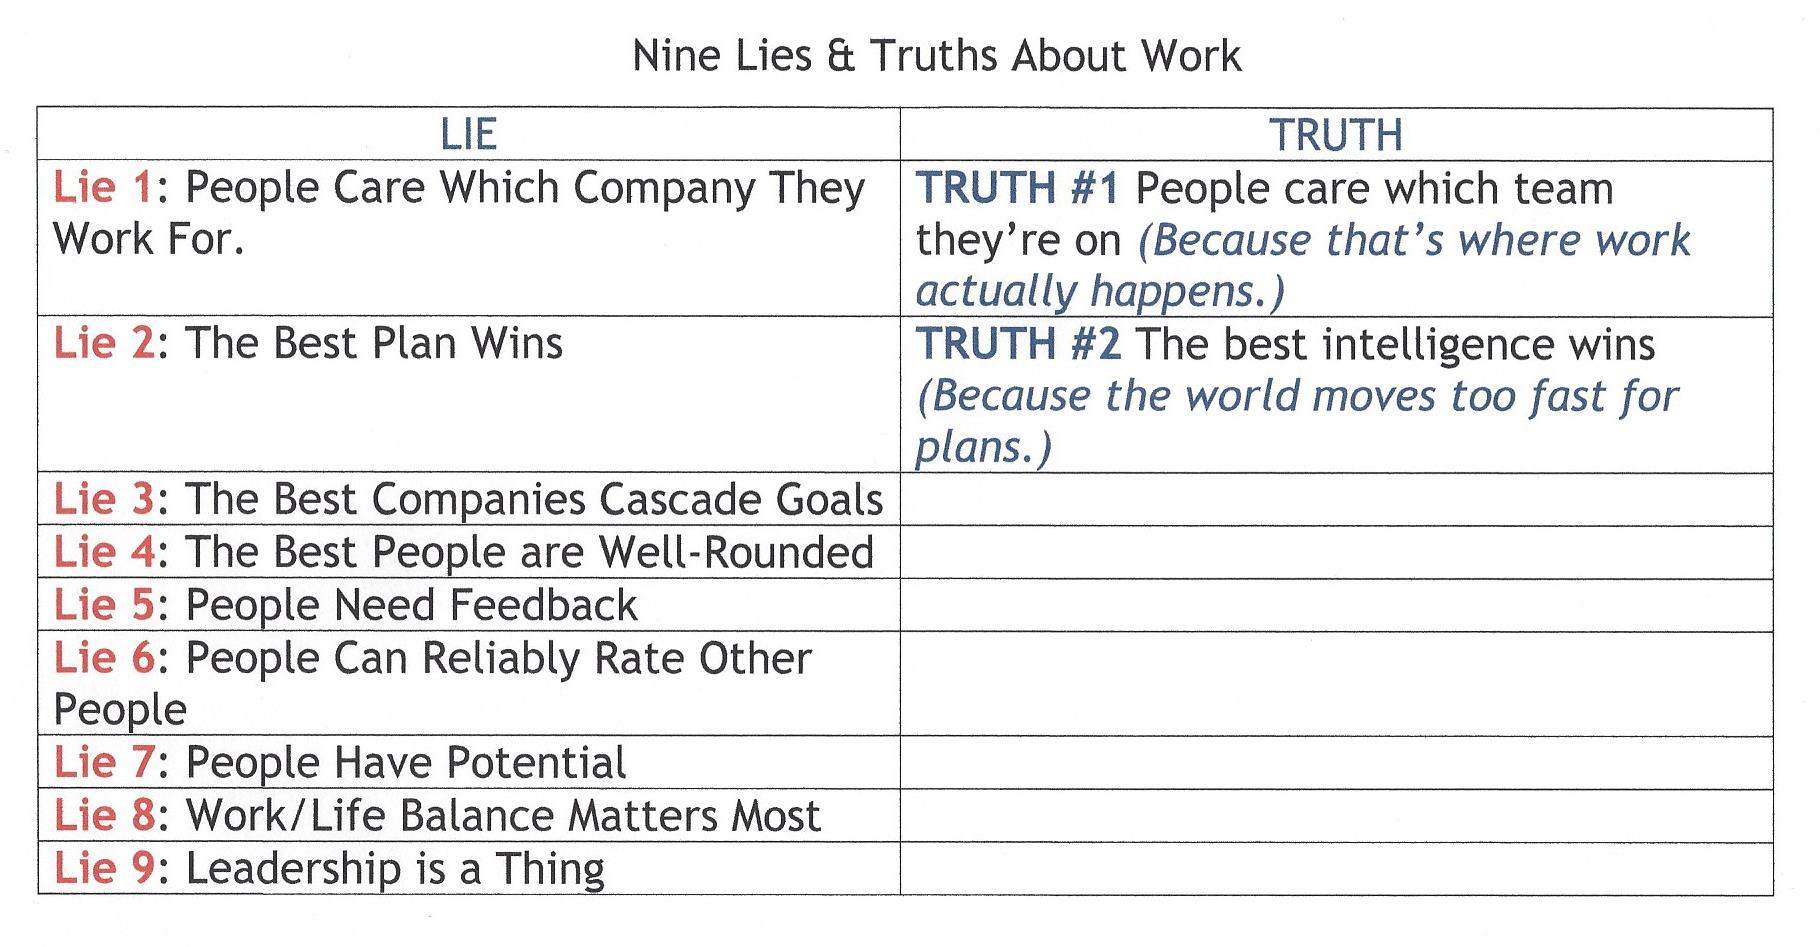 9 Lies and Truths About Work (Truth #1 & #2)